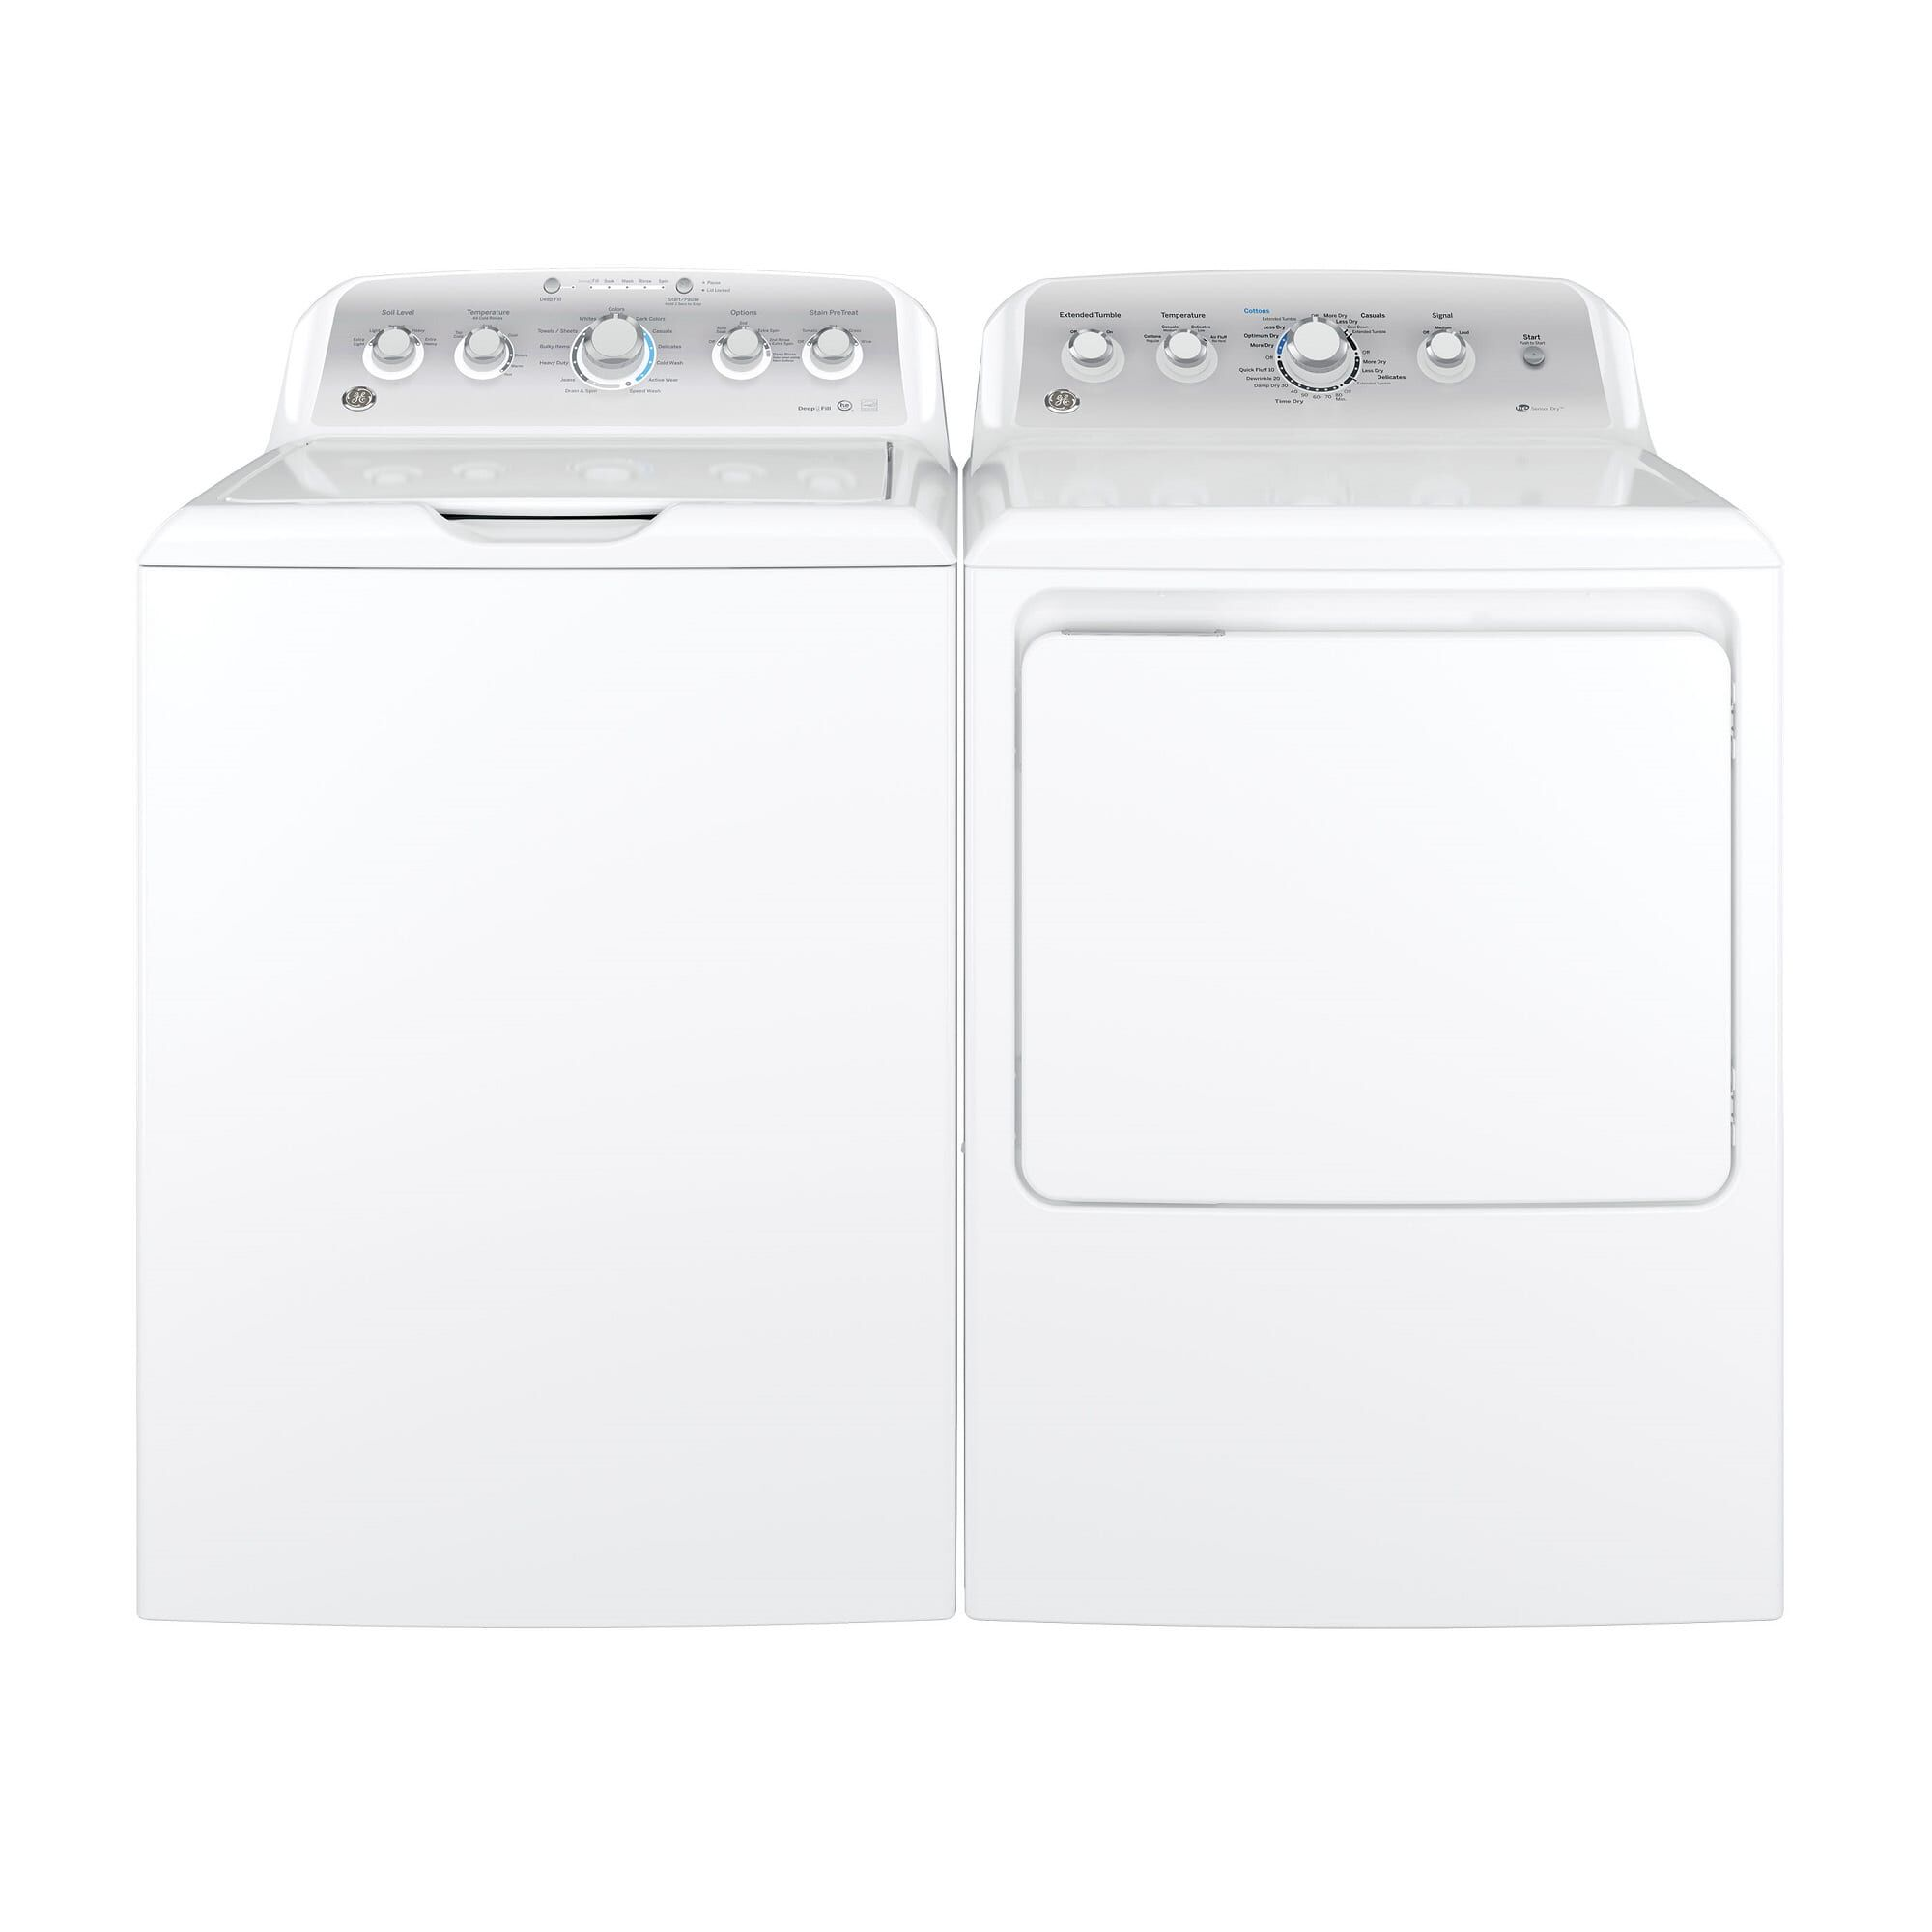 small resolution of ge appliances washers dryers 4 4 cu ft he top load washer 7 2 cu ft electric dryer